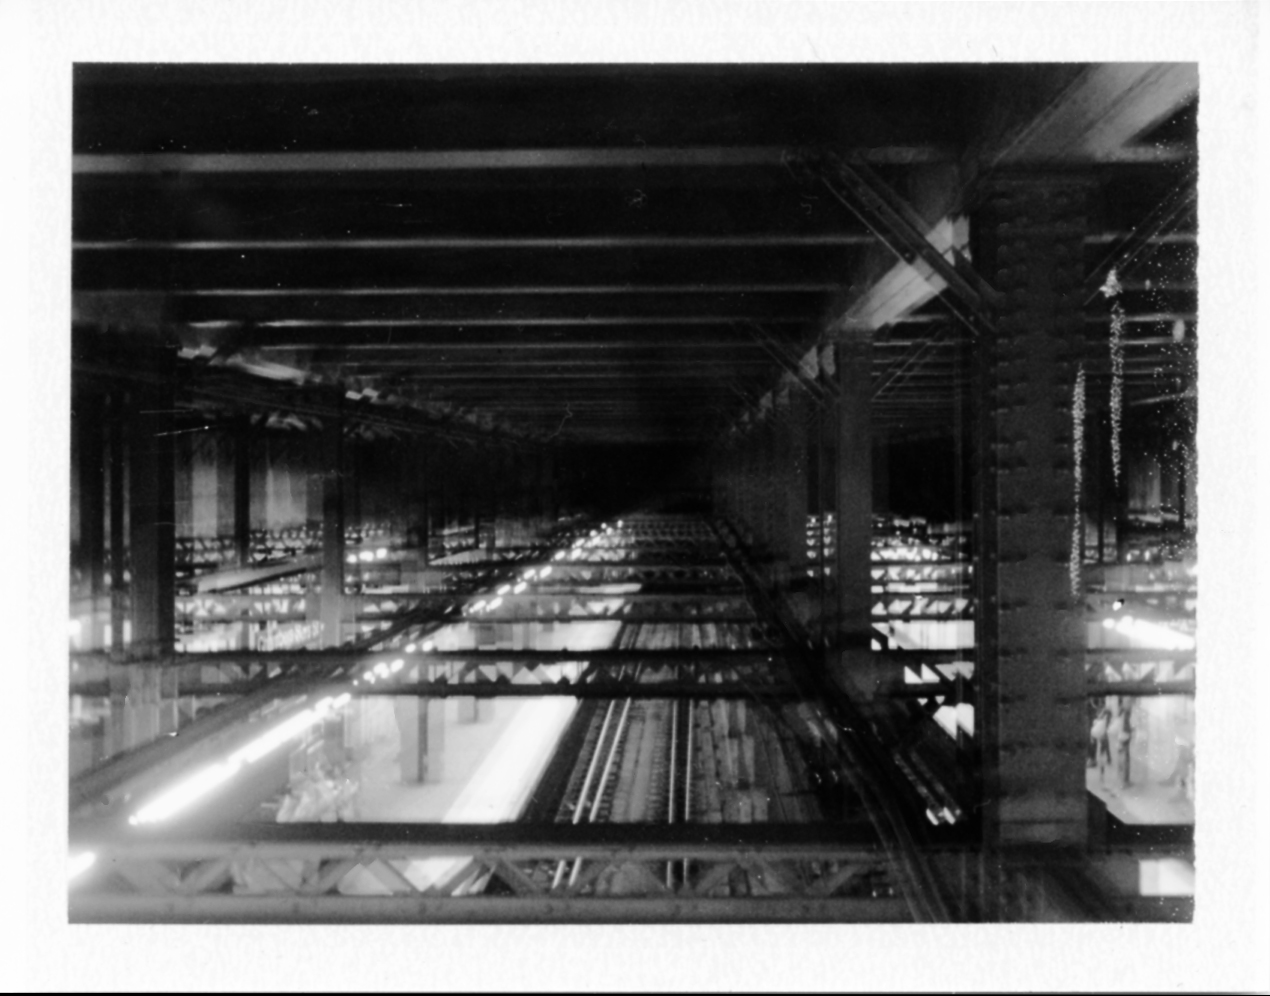 double exposure, inside a subway station